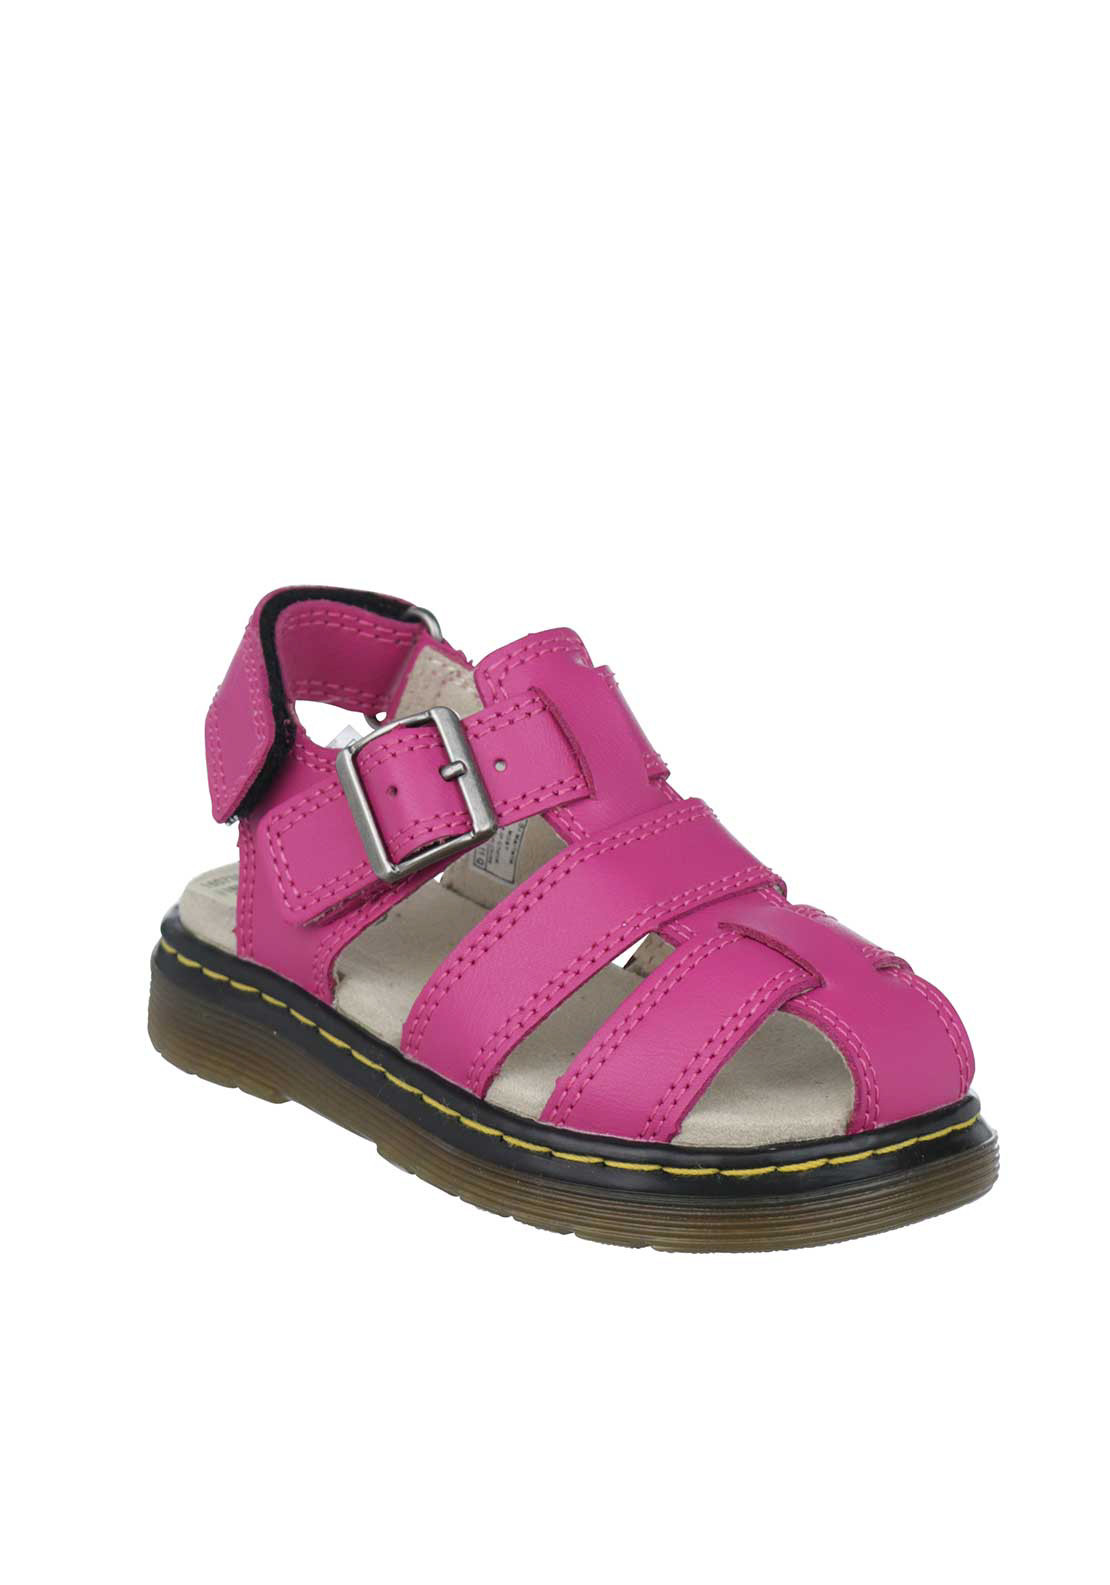 89ad82bf Dr. Martens Baby Girls Moby Leather Sandals, Pink | McElhinneys